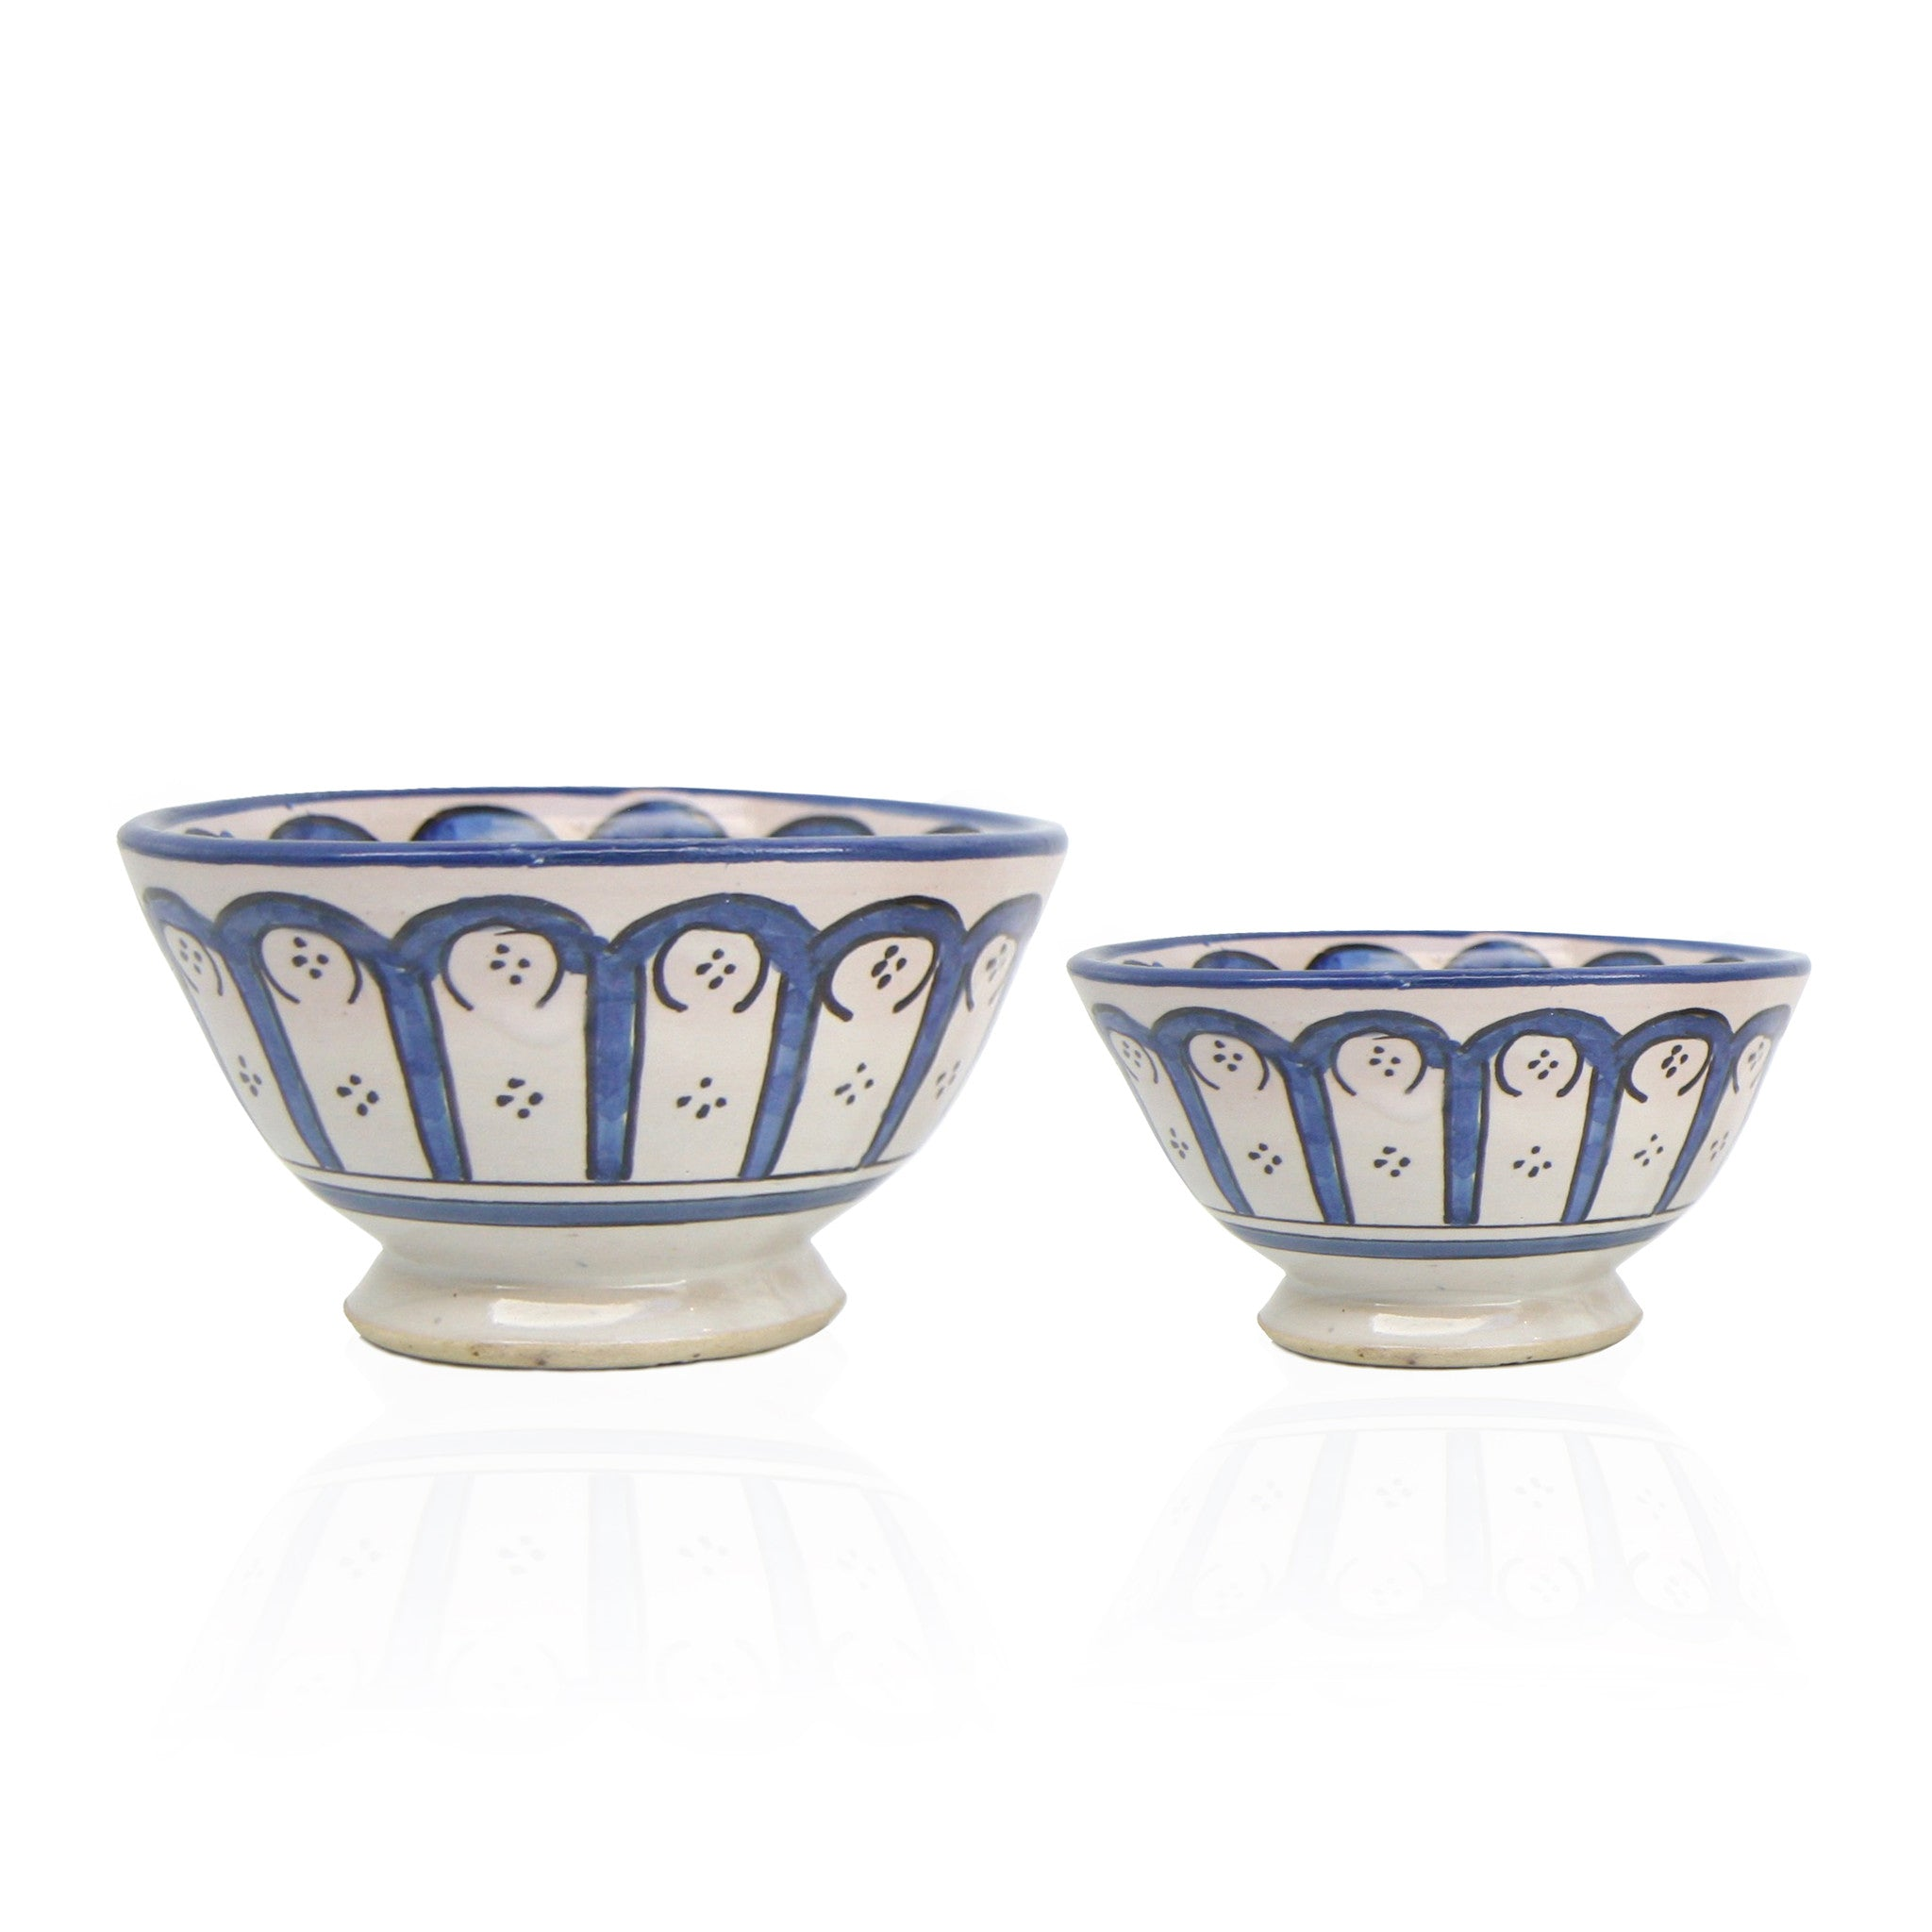 Handpainted Moroccan Bowls